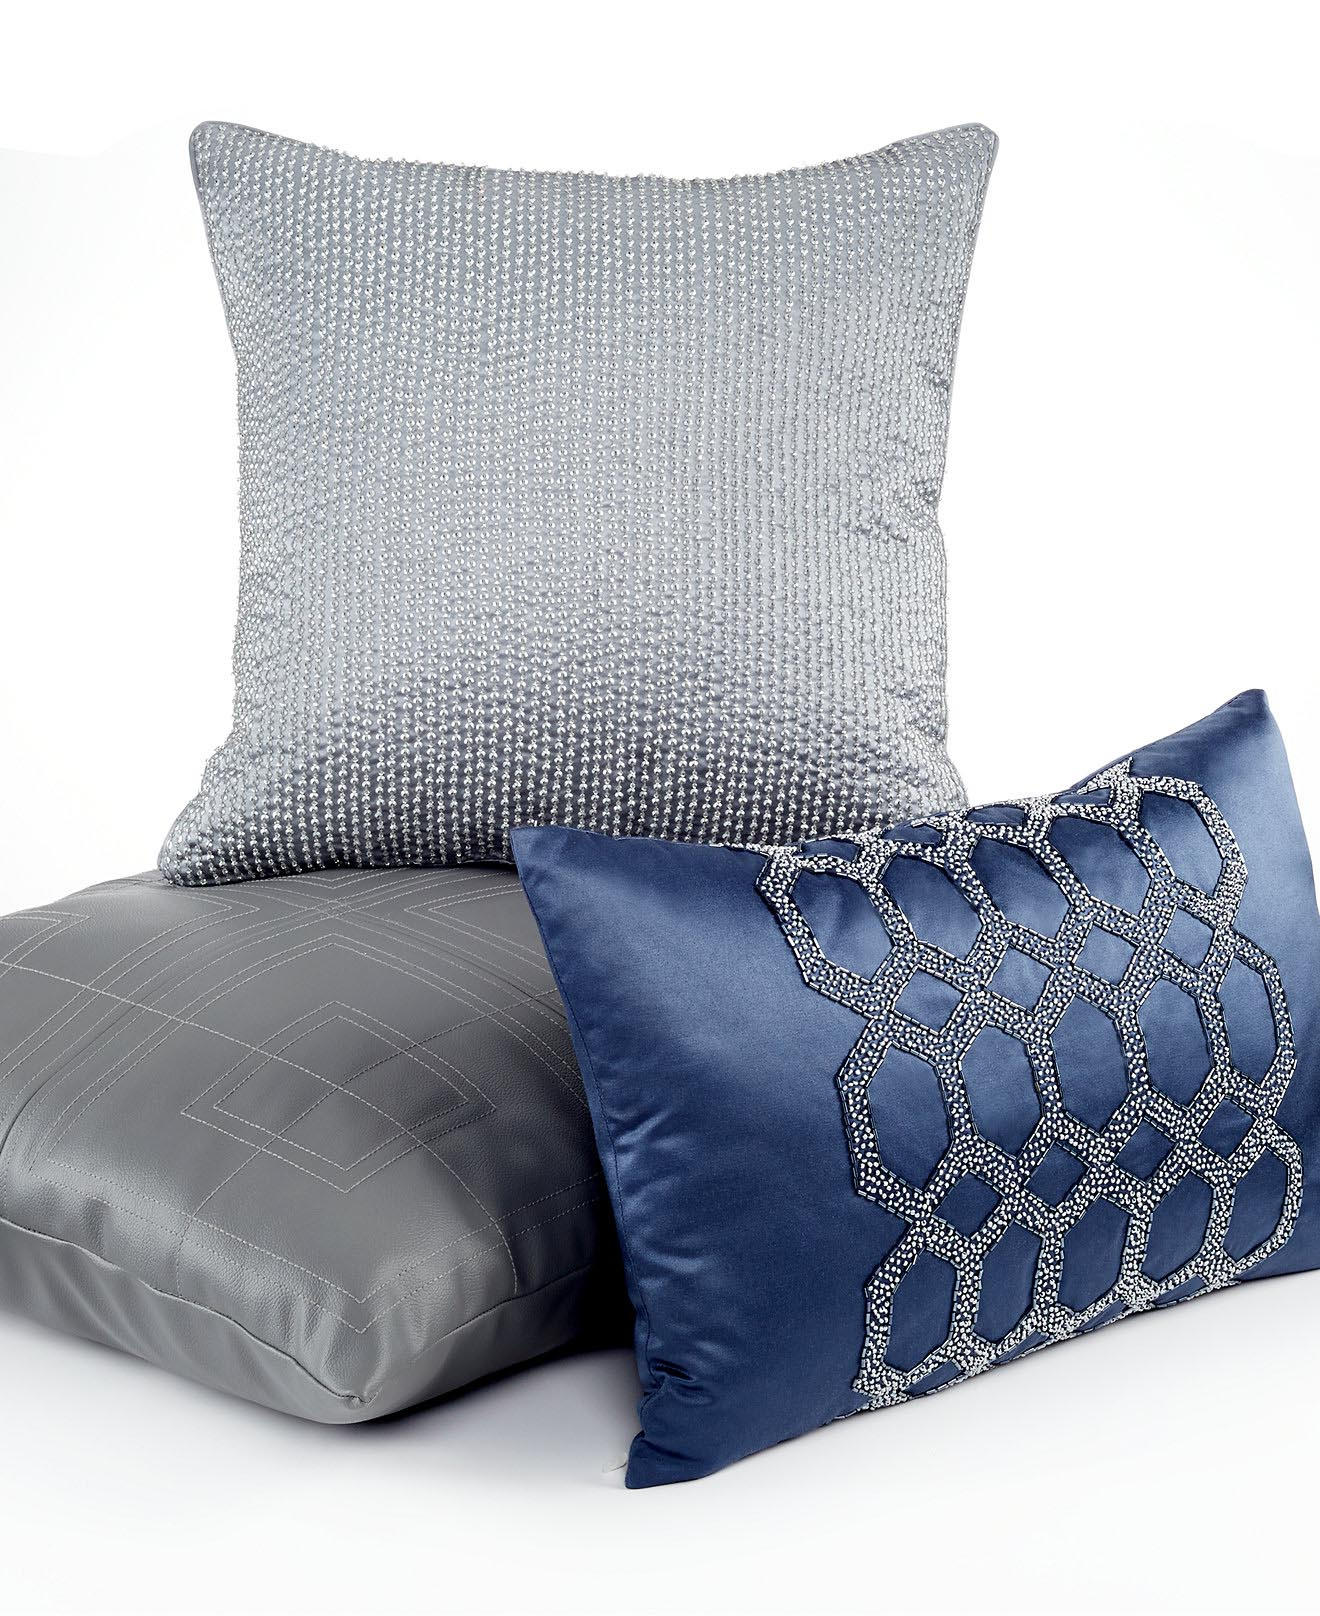 Decorative Pillows In Navy Blue : Navy Blue Pillows Decorative Best Decor Things